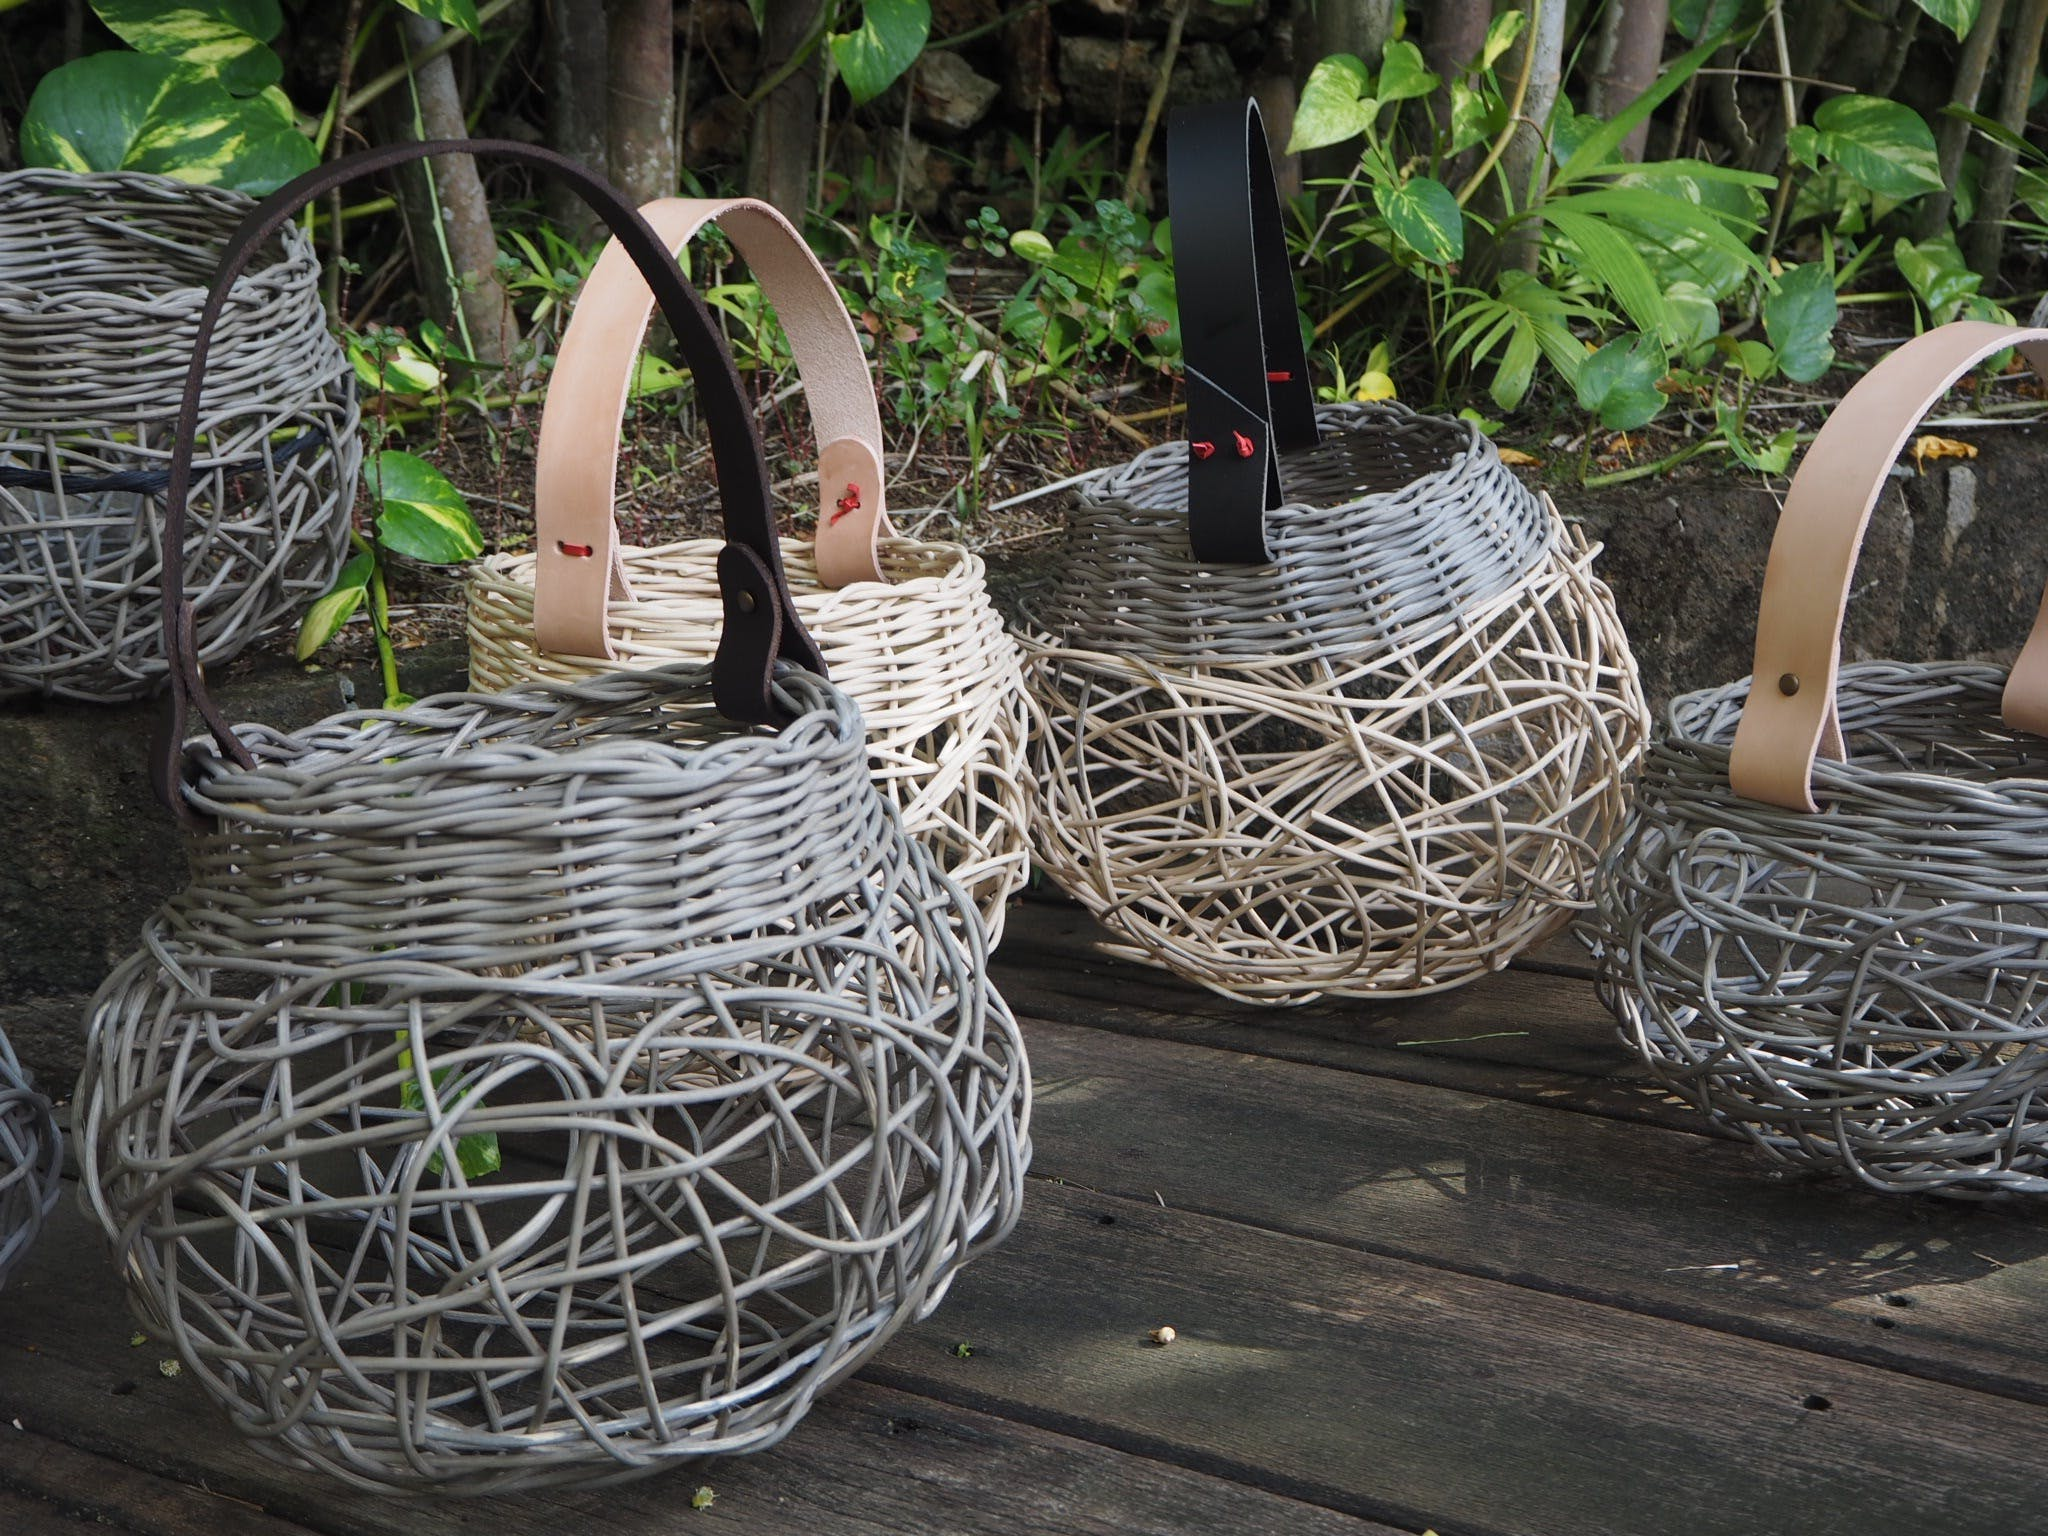 Weaving Woven Basket with Leather Handle - New South Wales Tourism